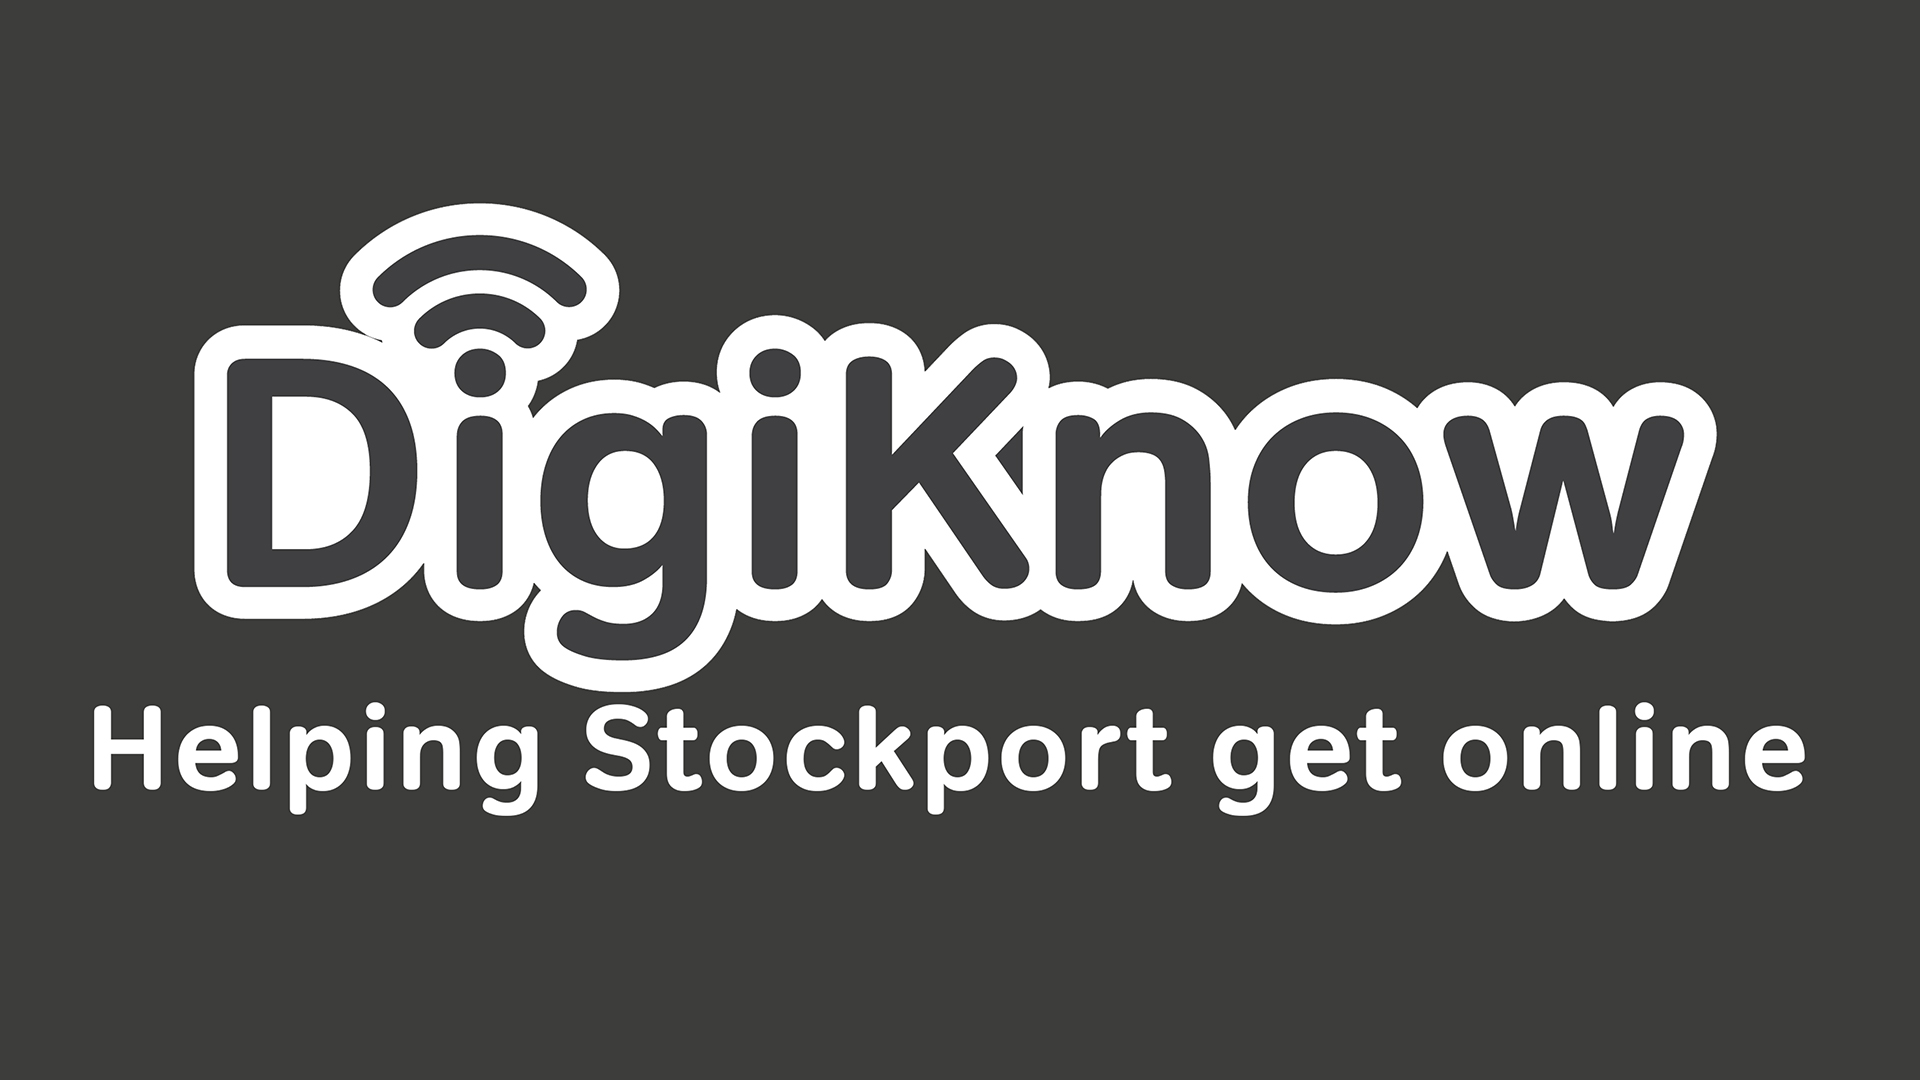 Community groups help Stockport residents improve digital skills